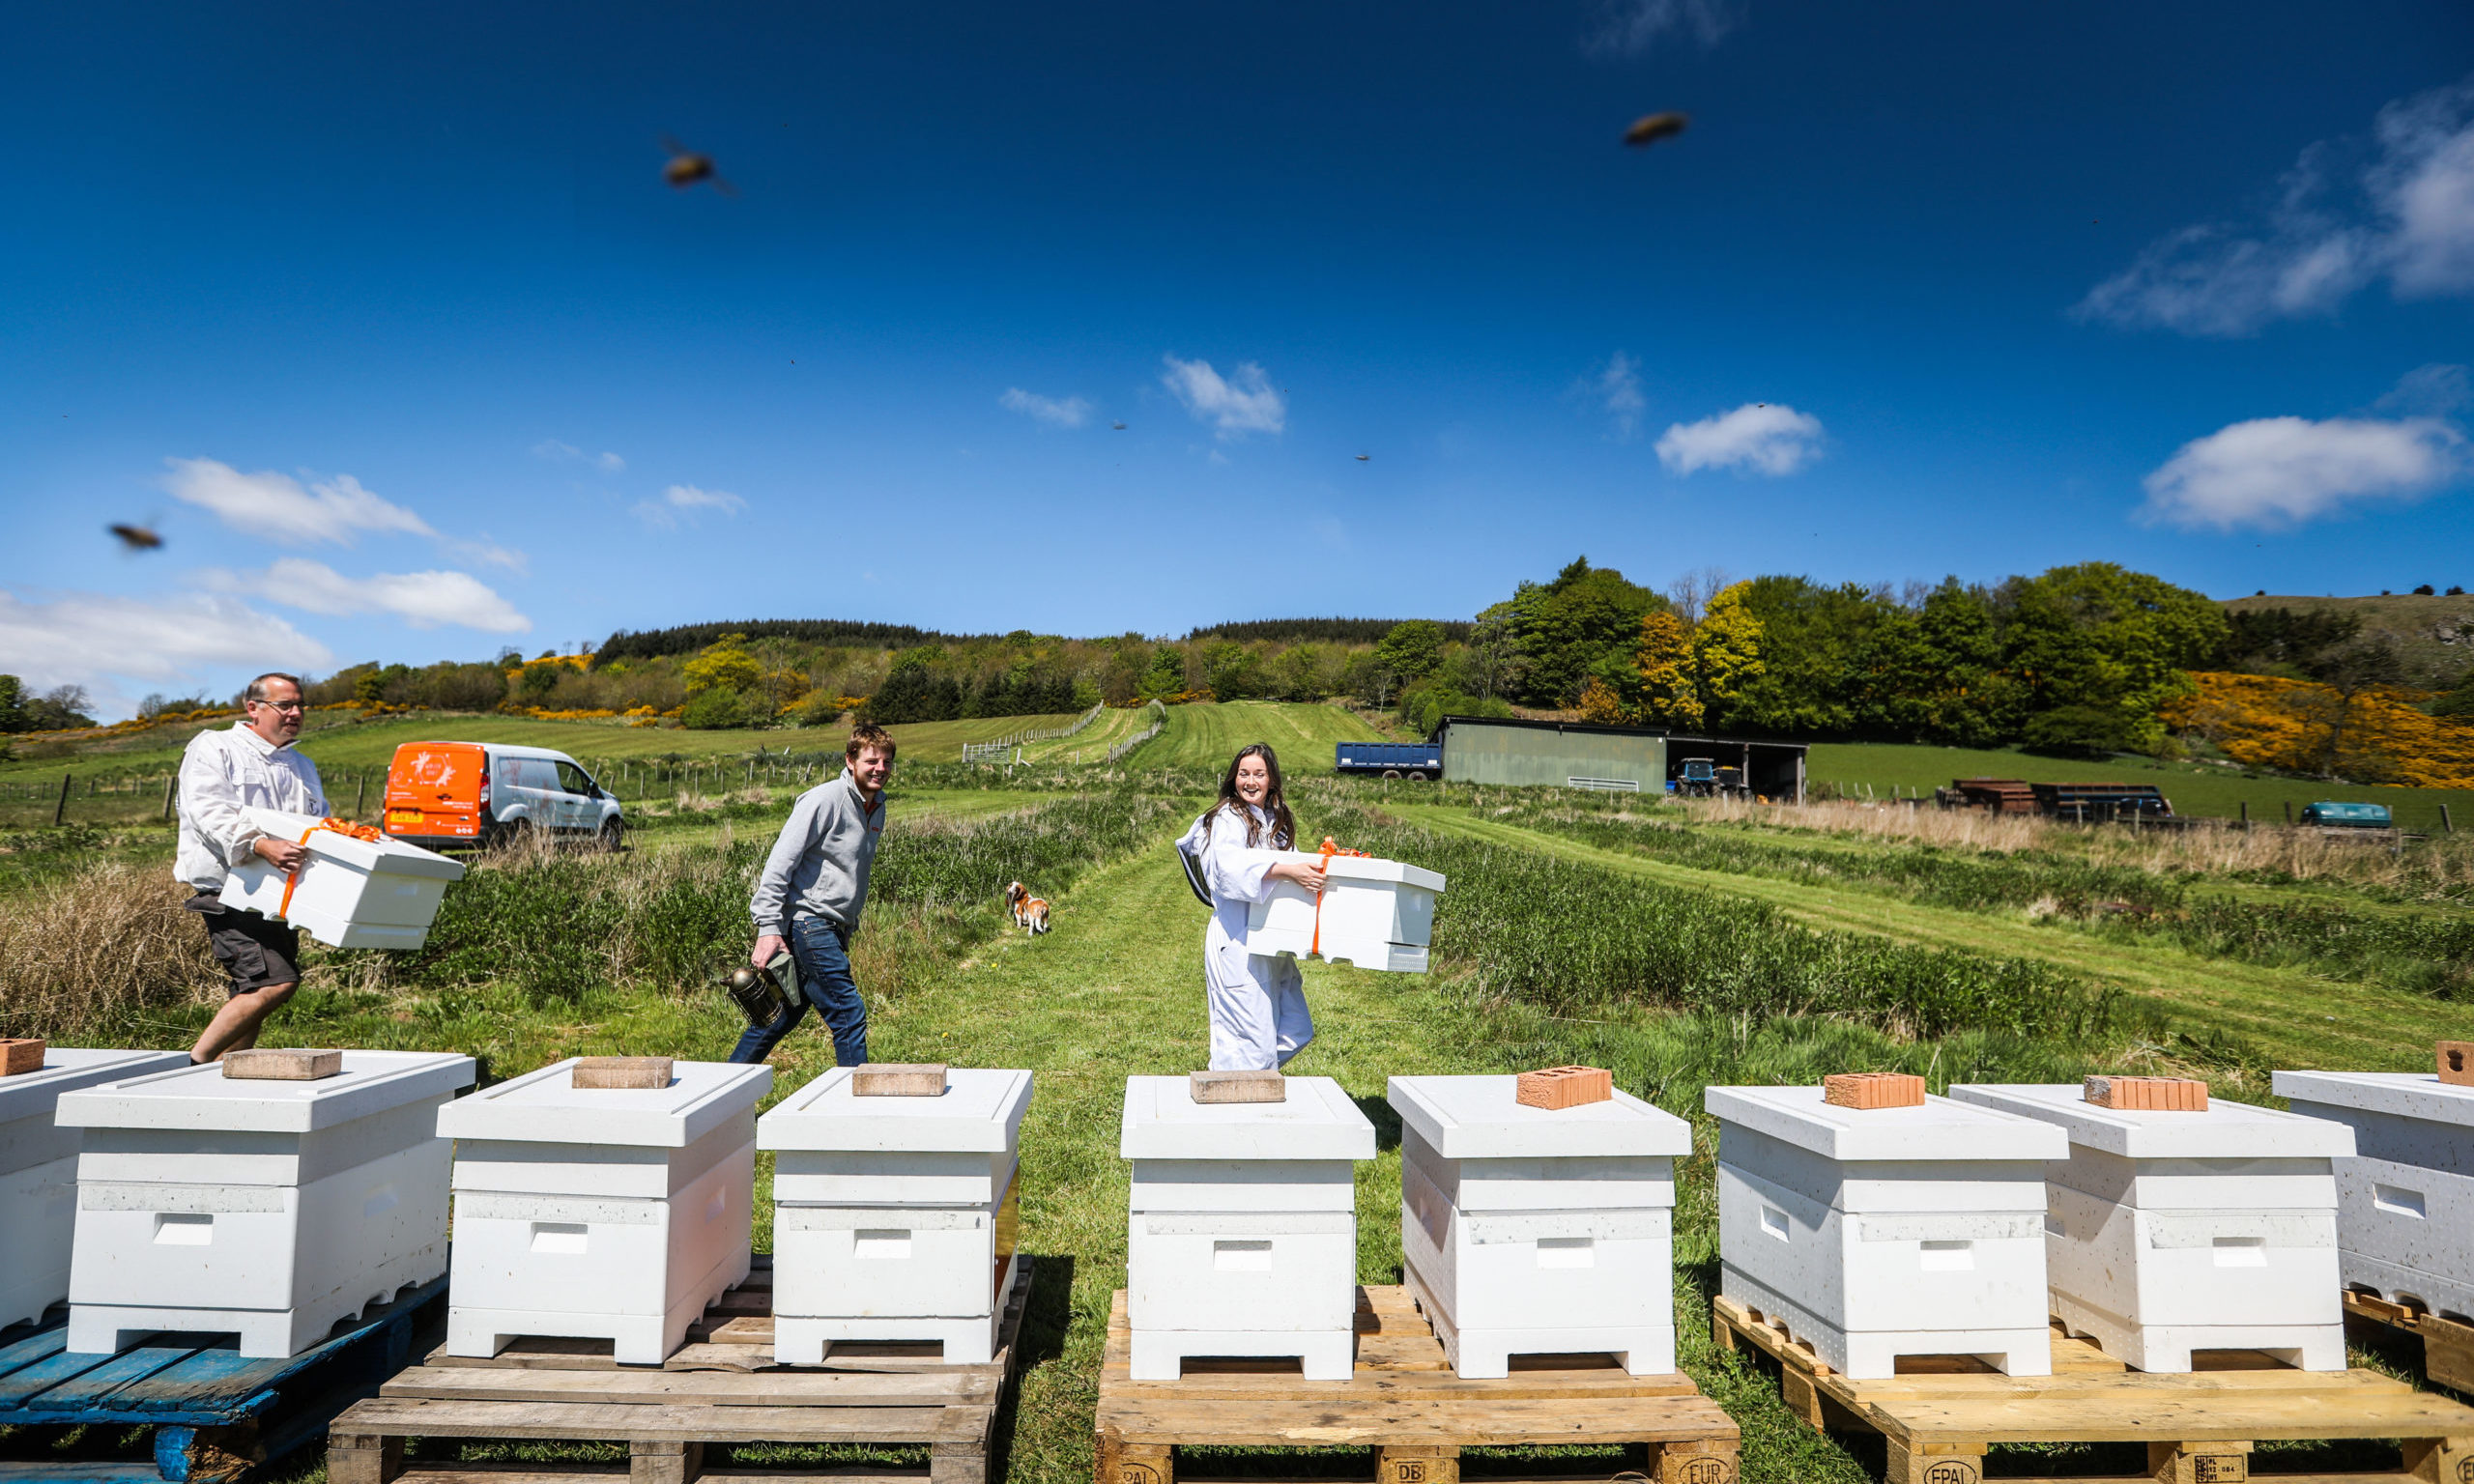 Beekeeper Meik Molitor, Managing Director Daniel Webster and Production Manager Emily-Kate McDonnell